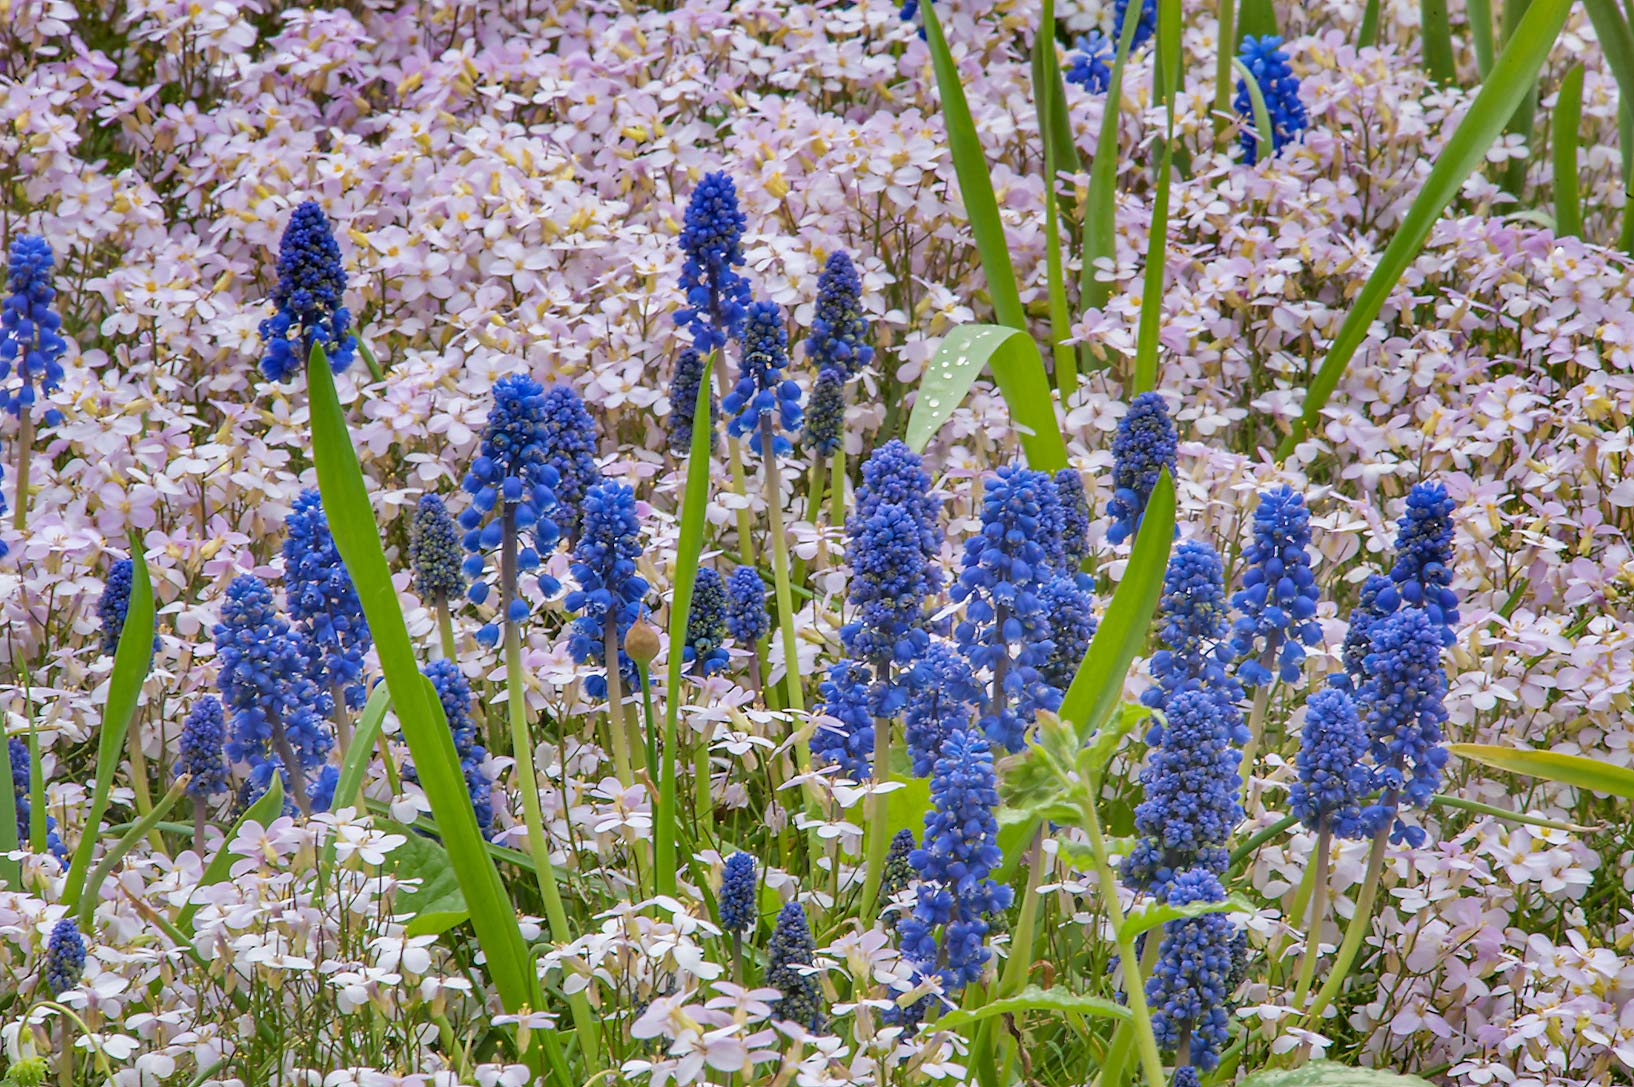 Grape hyacinth (Muscari) in Botanic Gardens of...Institute. St.Petersburg, Russia